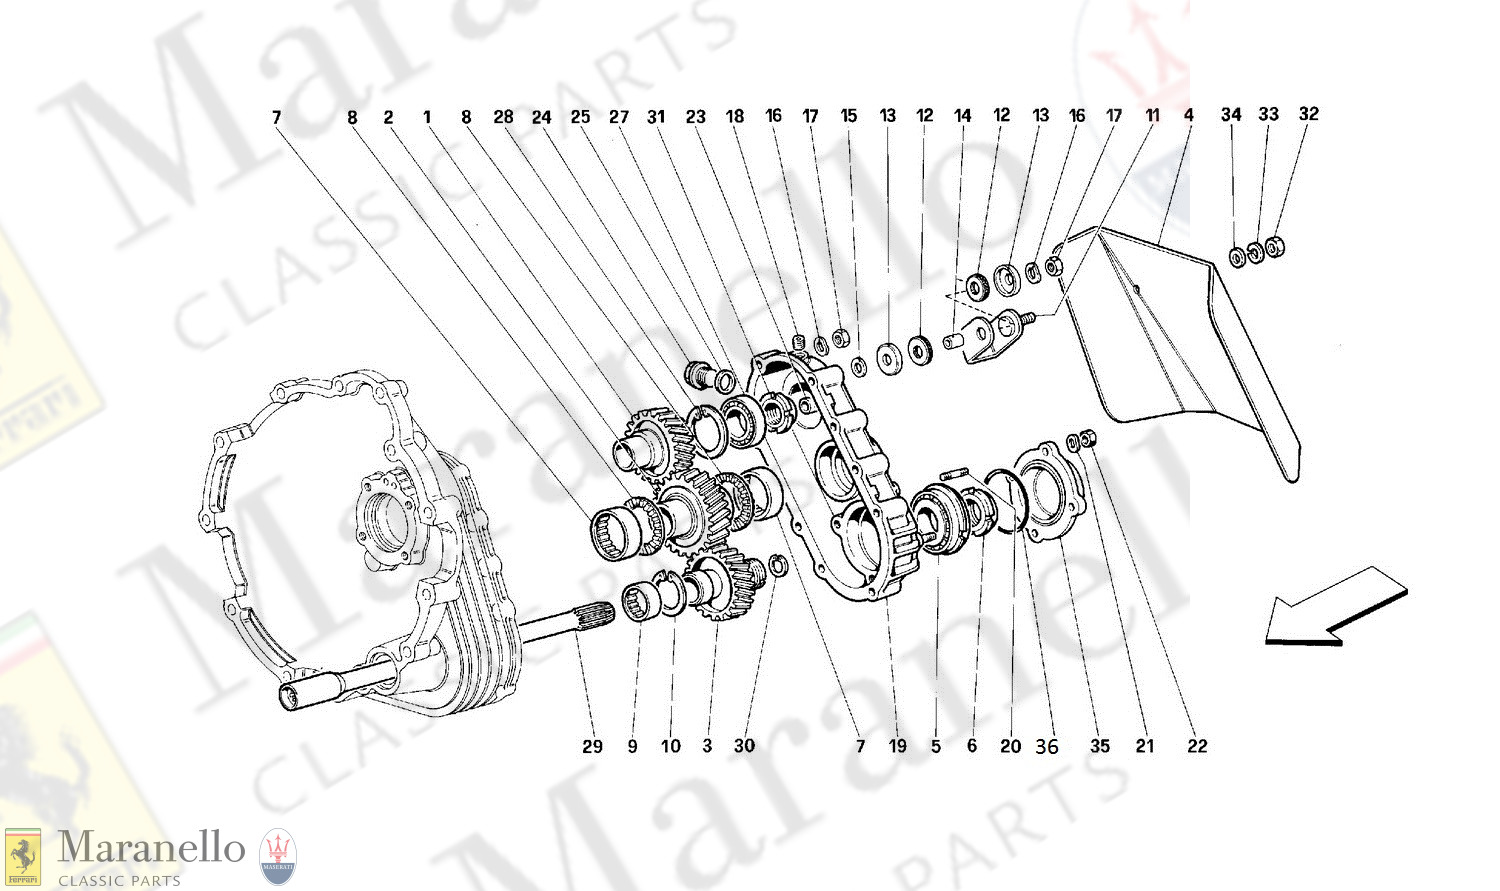 029 - Gearbox Transmission